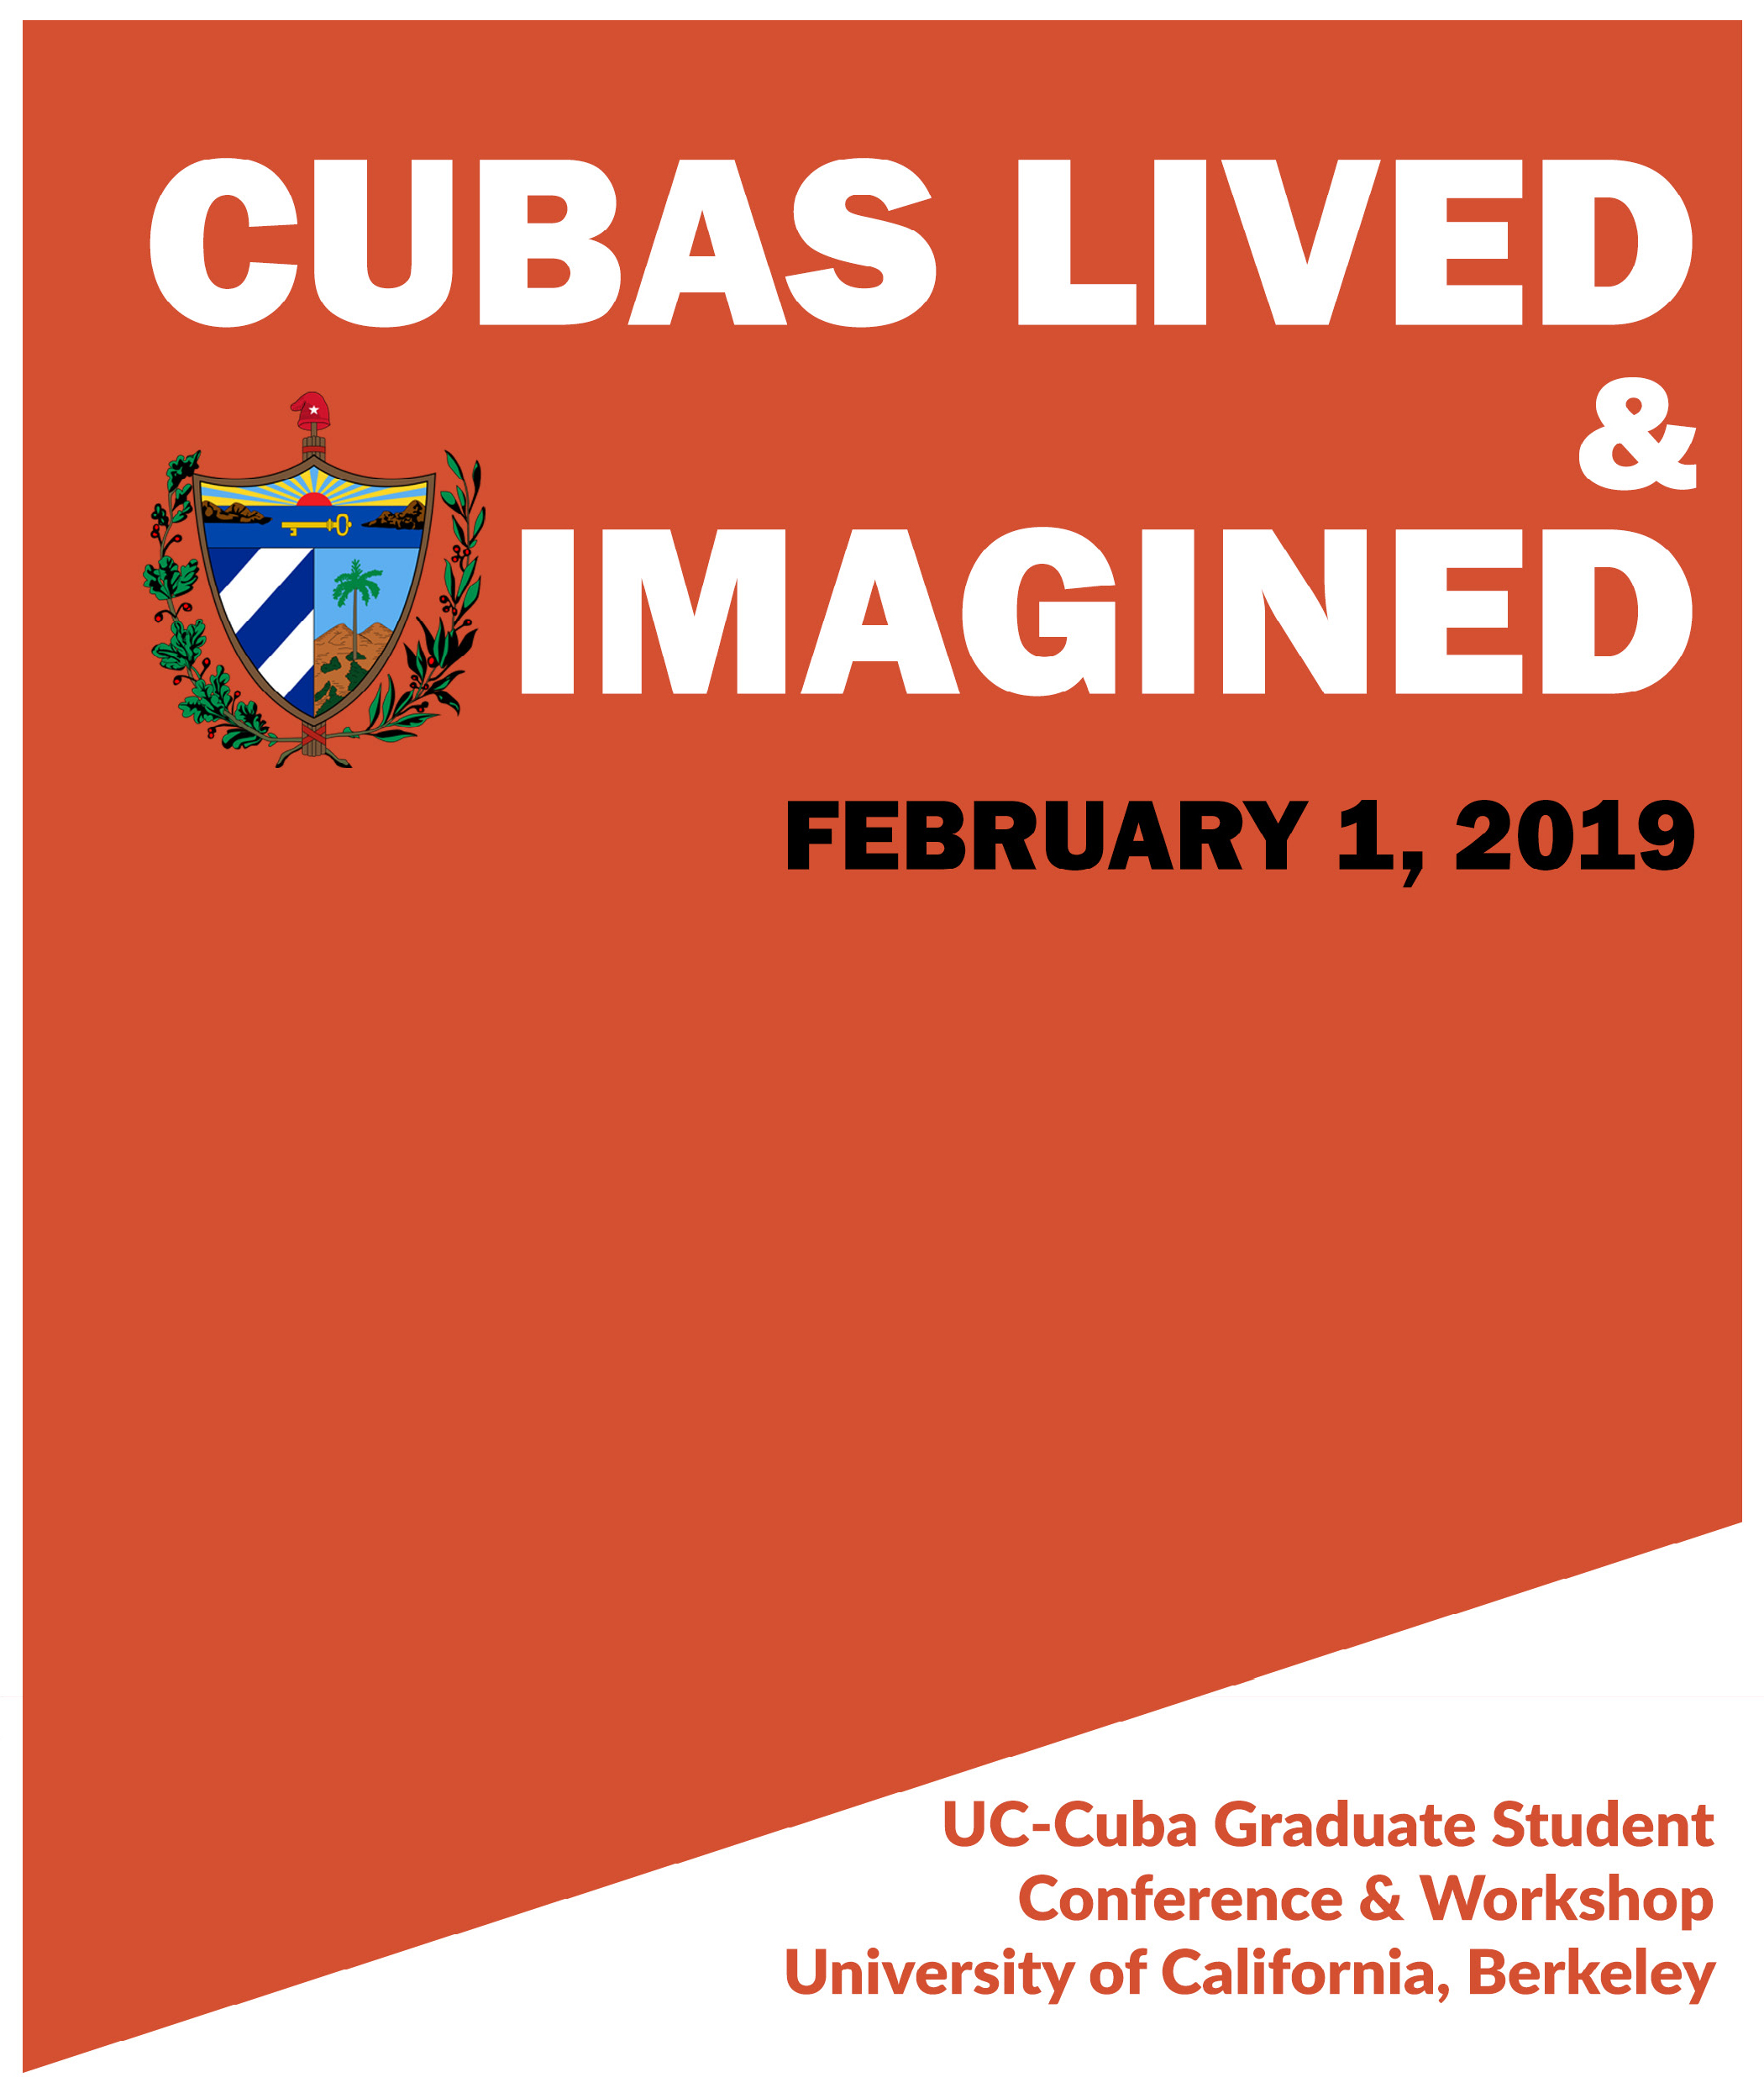 UC-Cuba Conference Poster